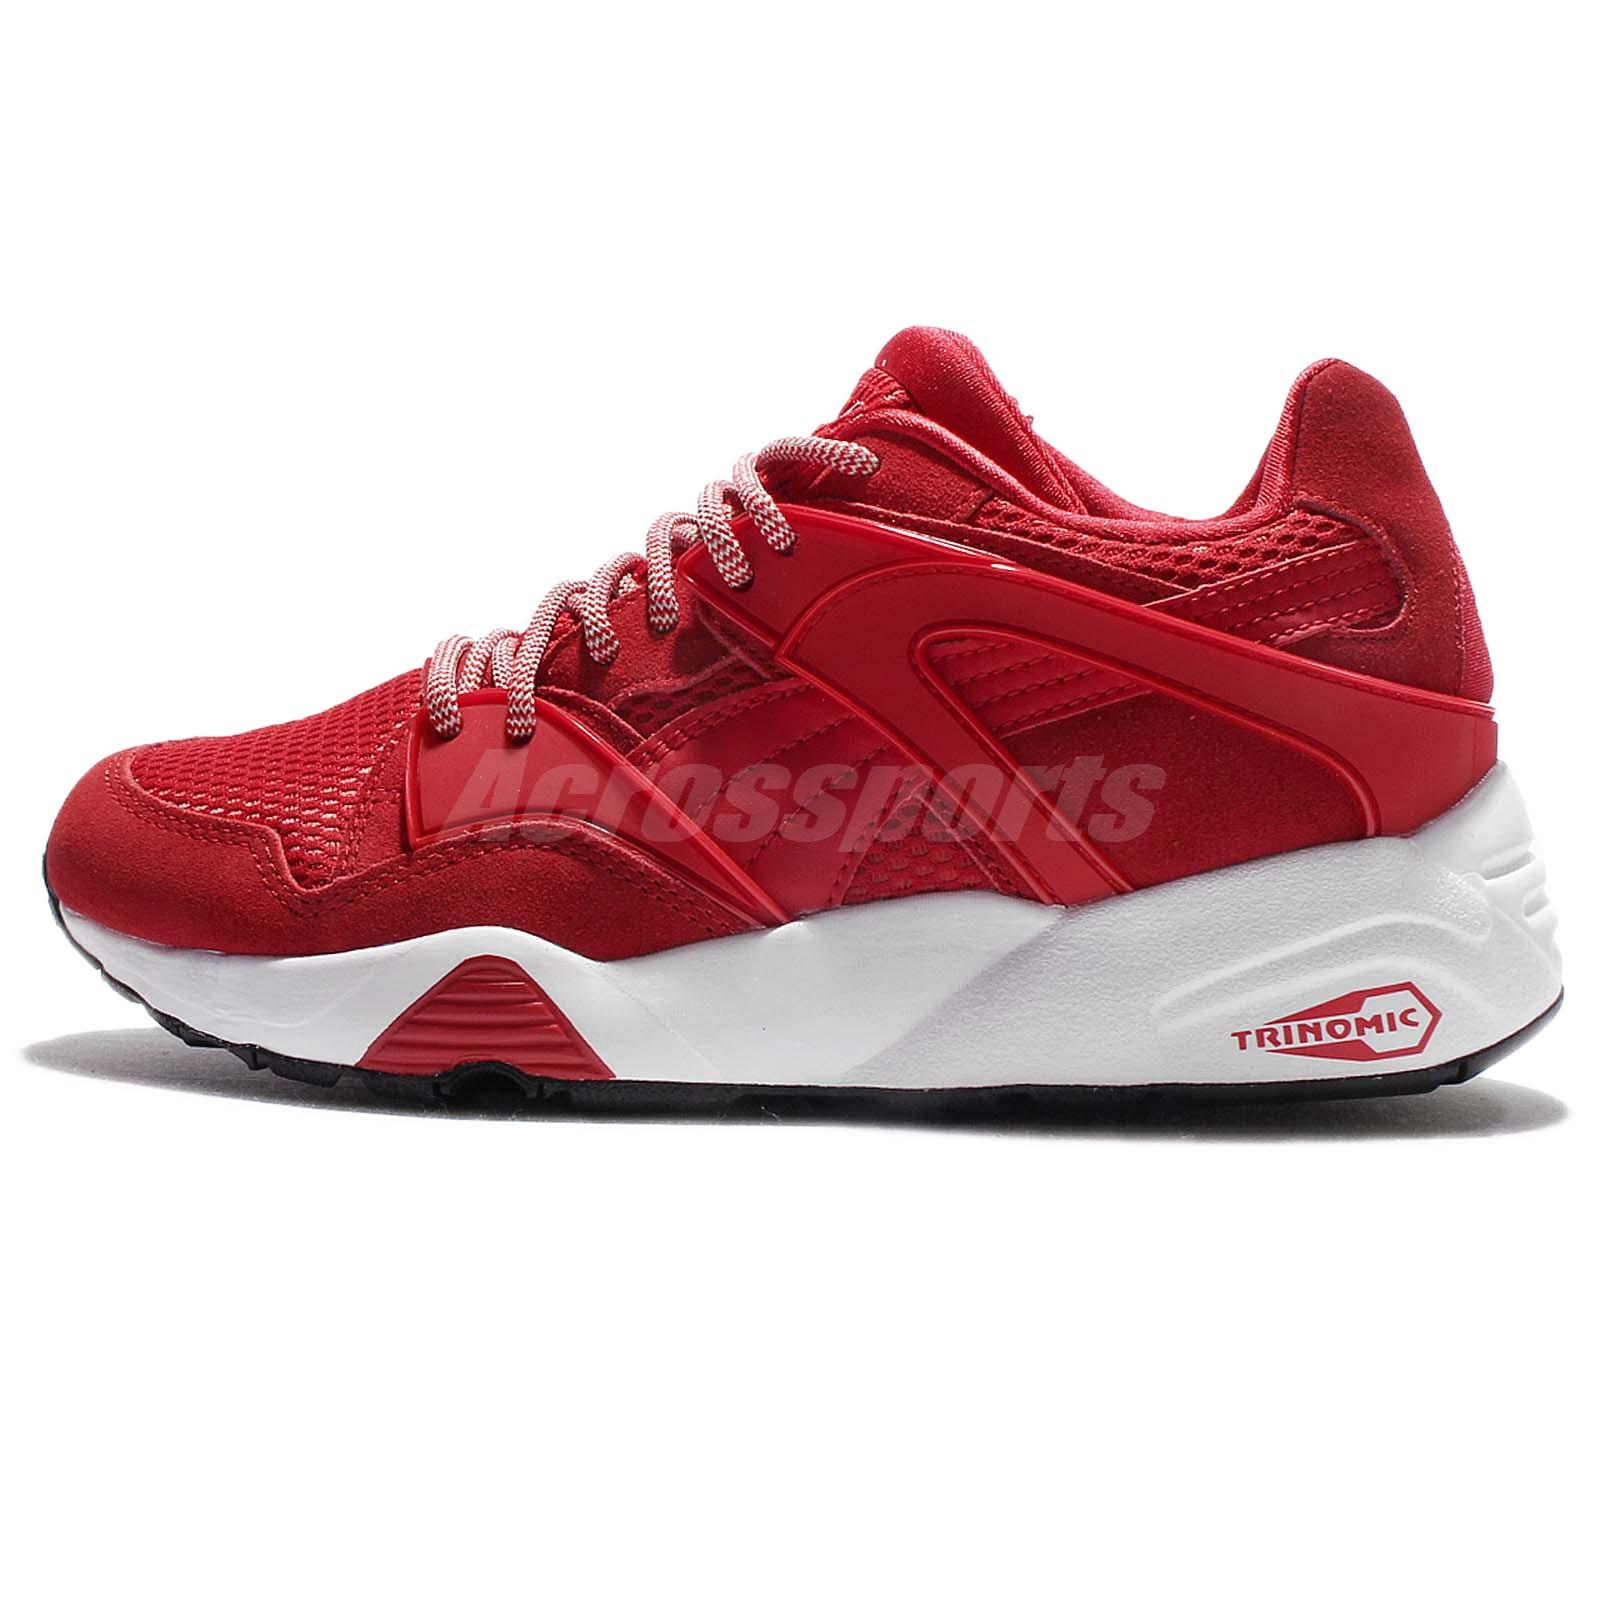 Puma Blaze Red White Trinomic Suede Men Casual Shoes Sneakers Trainers  362510-04 dfd72a0ee